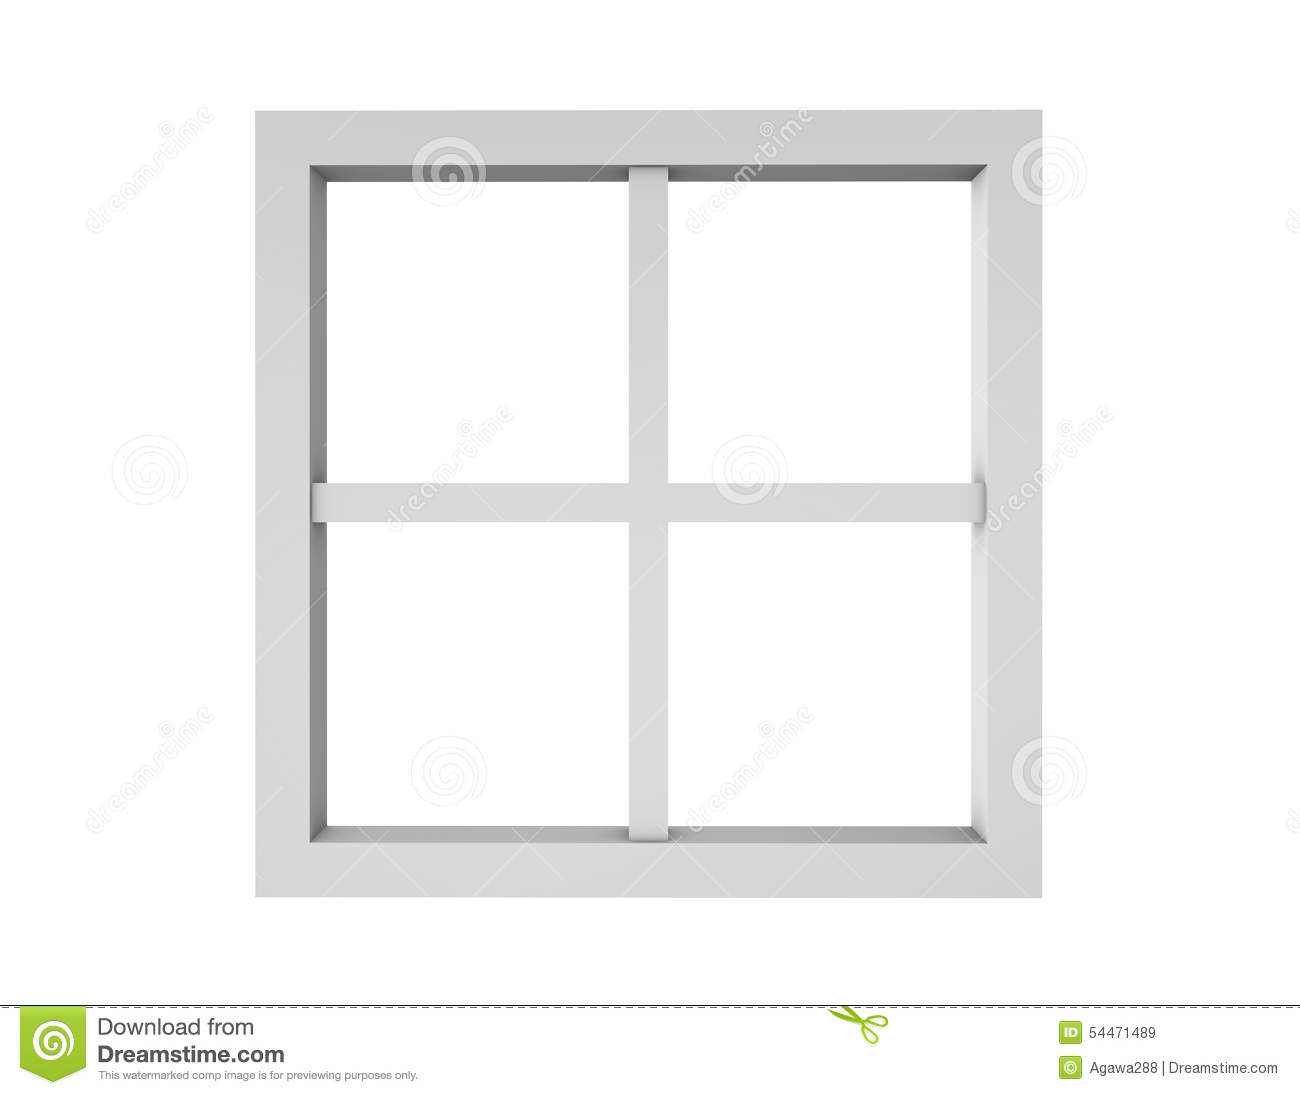 White window frame clipart.